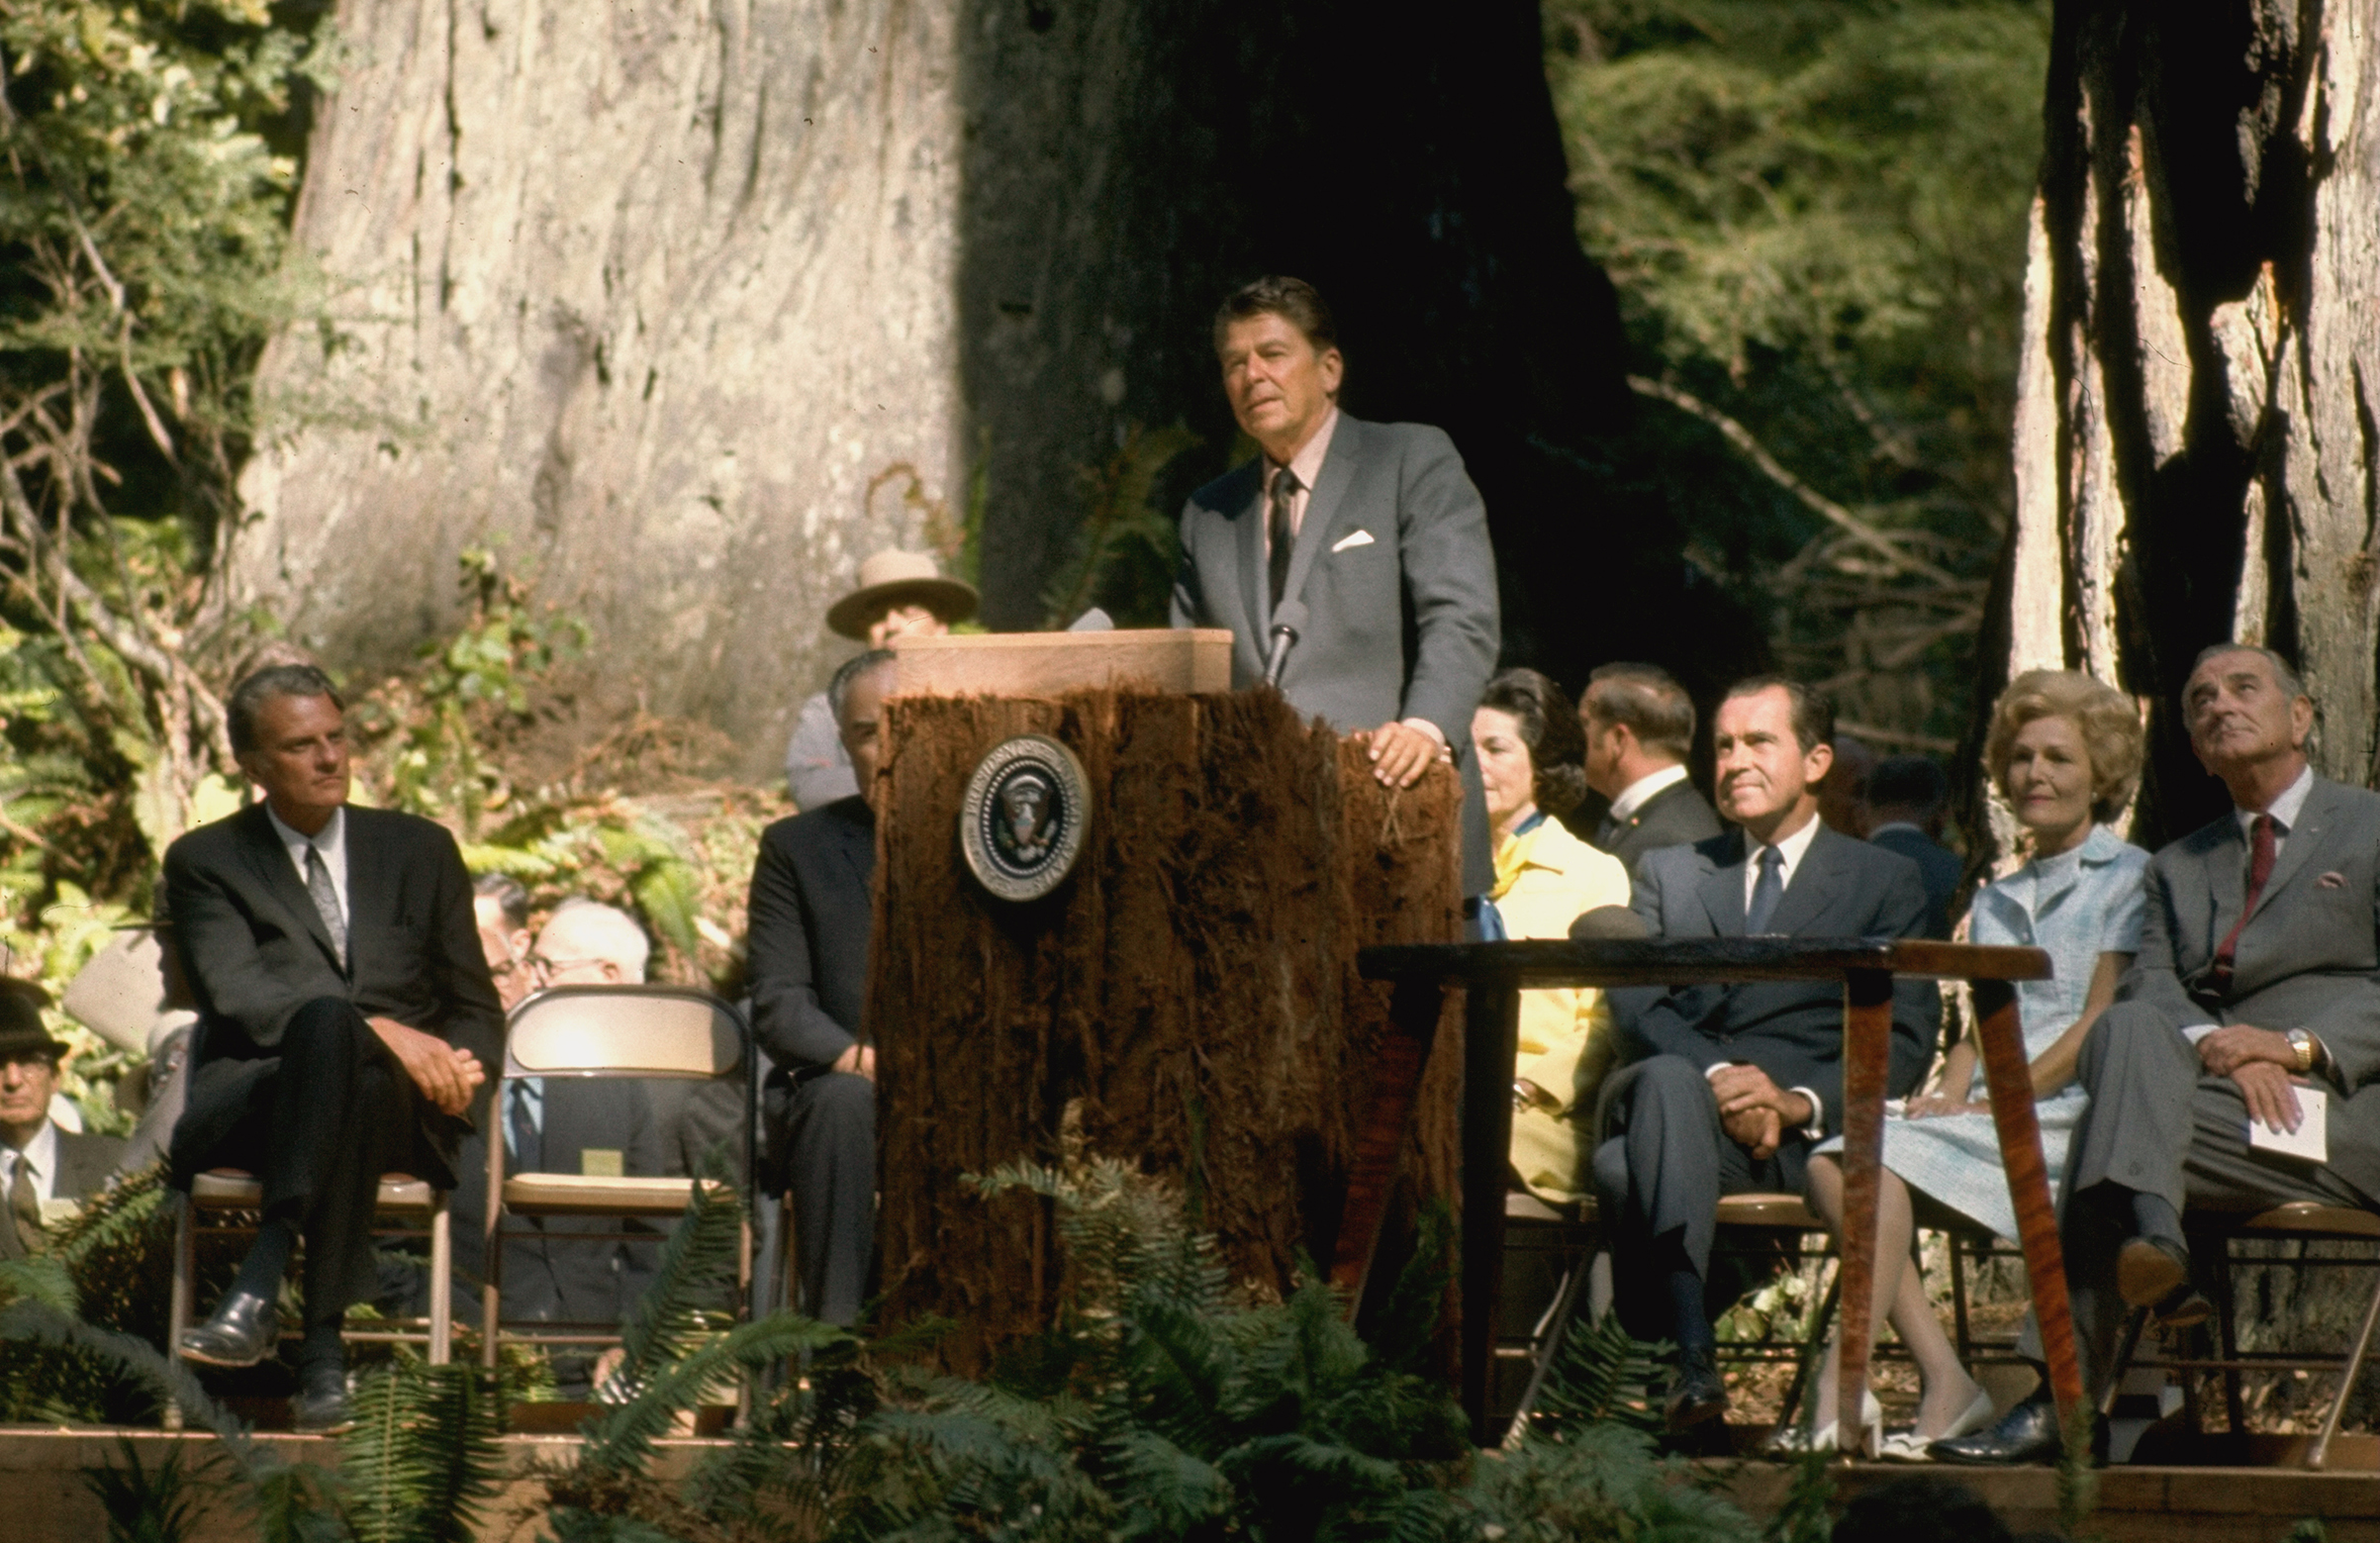 California Governor Ronald Reagan speaking while standing at podium as Reverend Billy Graham, Richard Nixon and wife Pat and Lyndon Johnson look on at Redwood National Park.